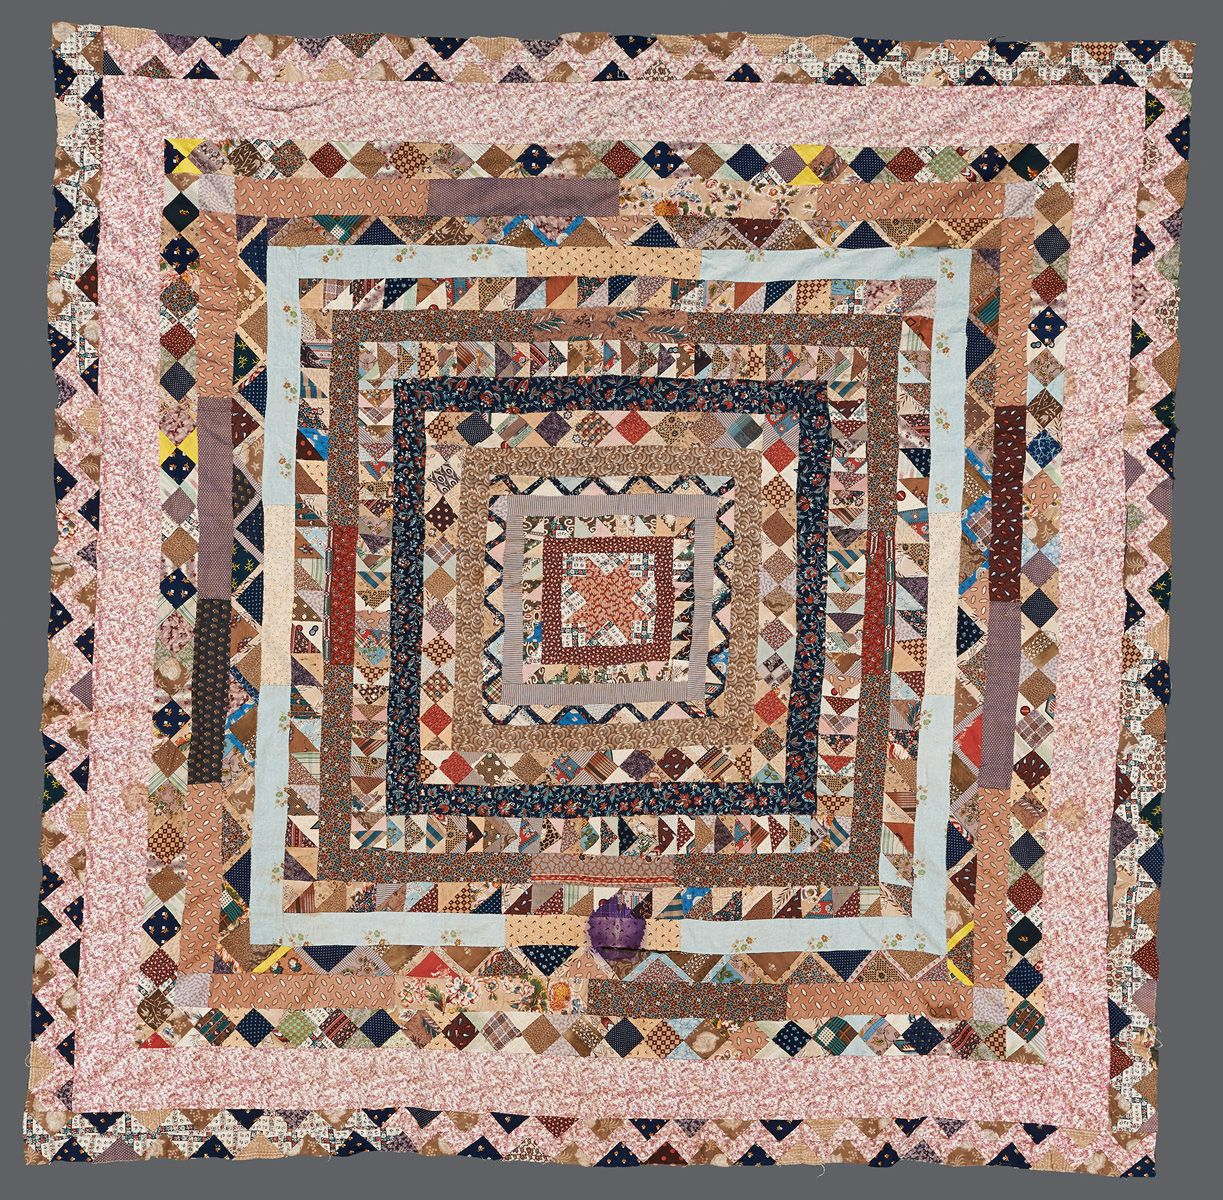 Collections Quilts Antique Quilts Patchwork Quilts